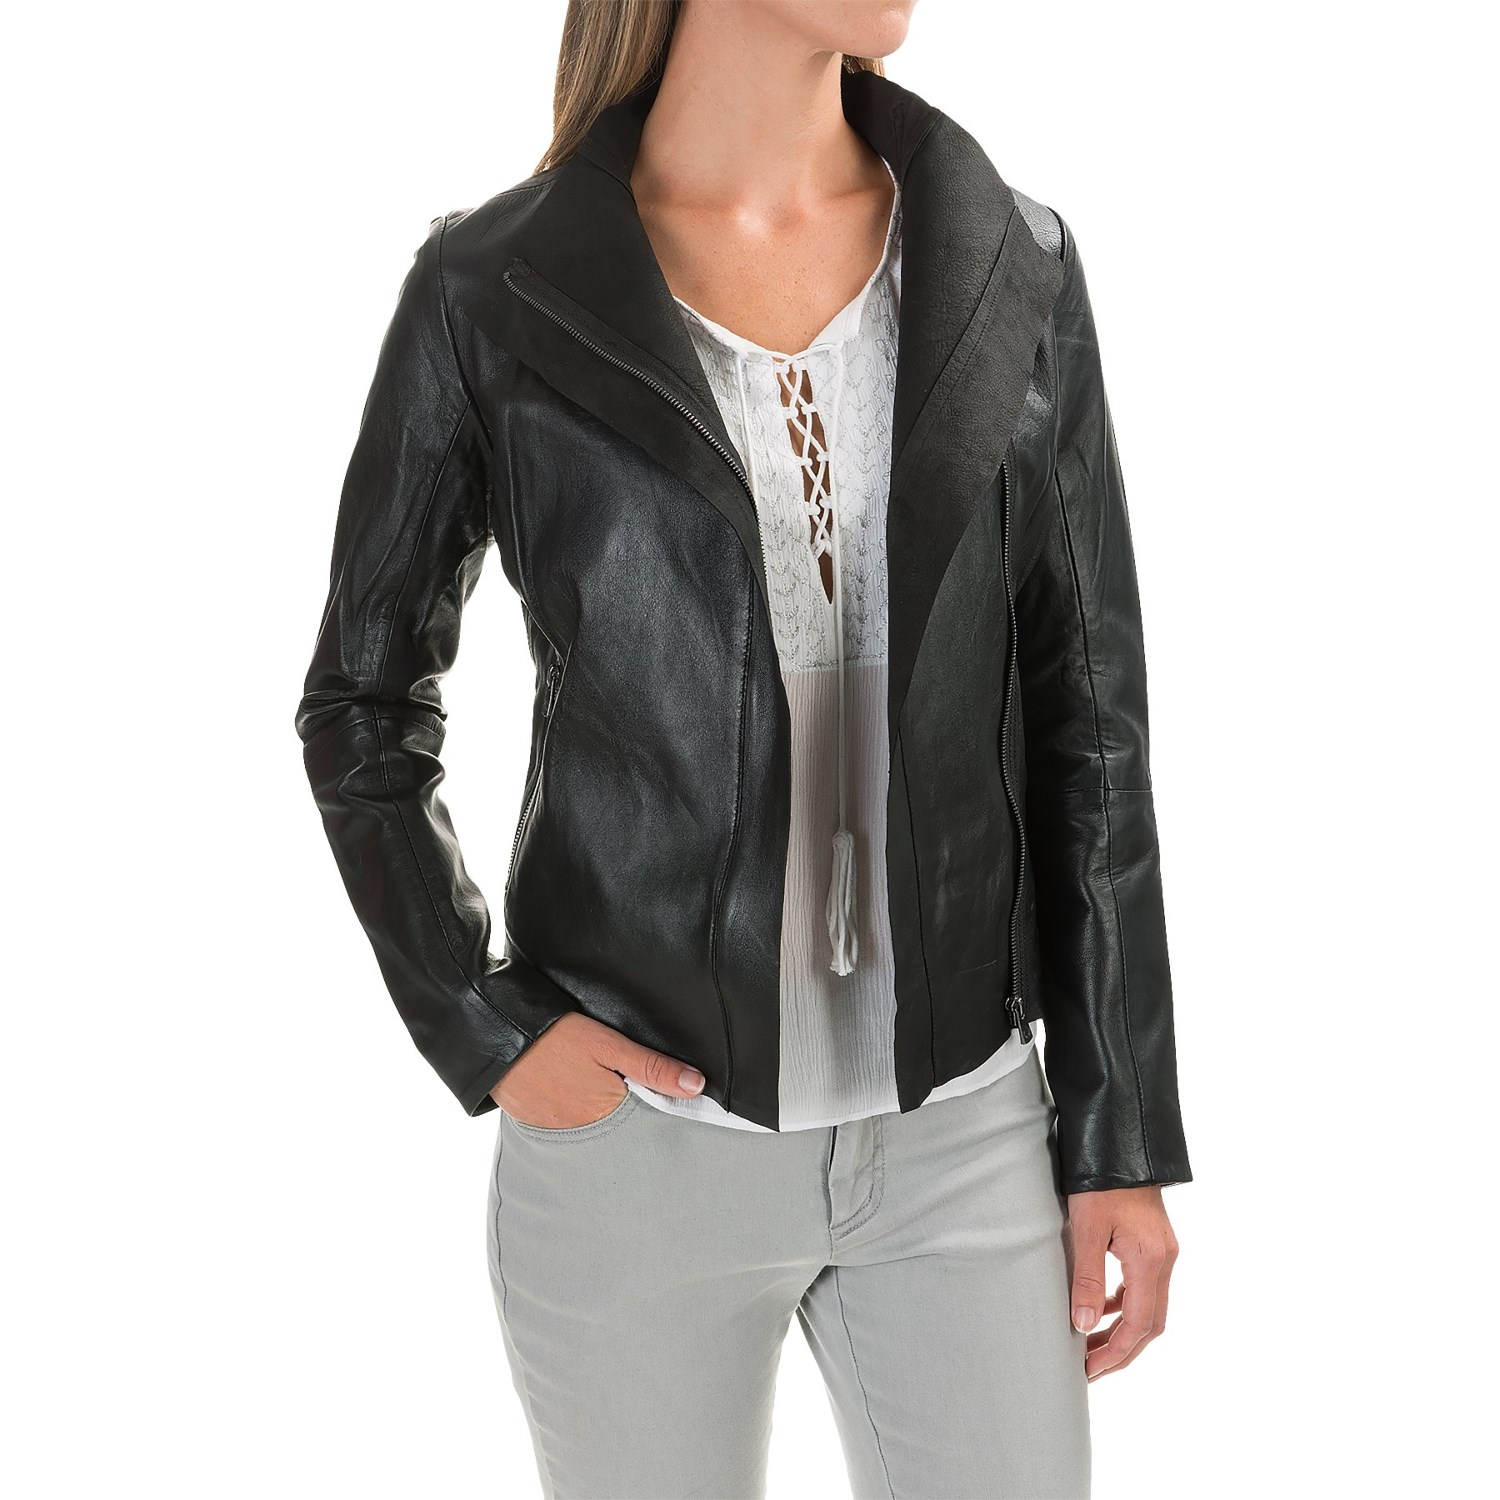 Dry cleaning leather jacket